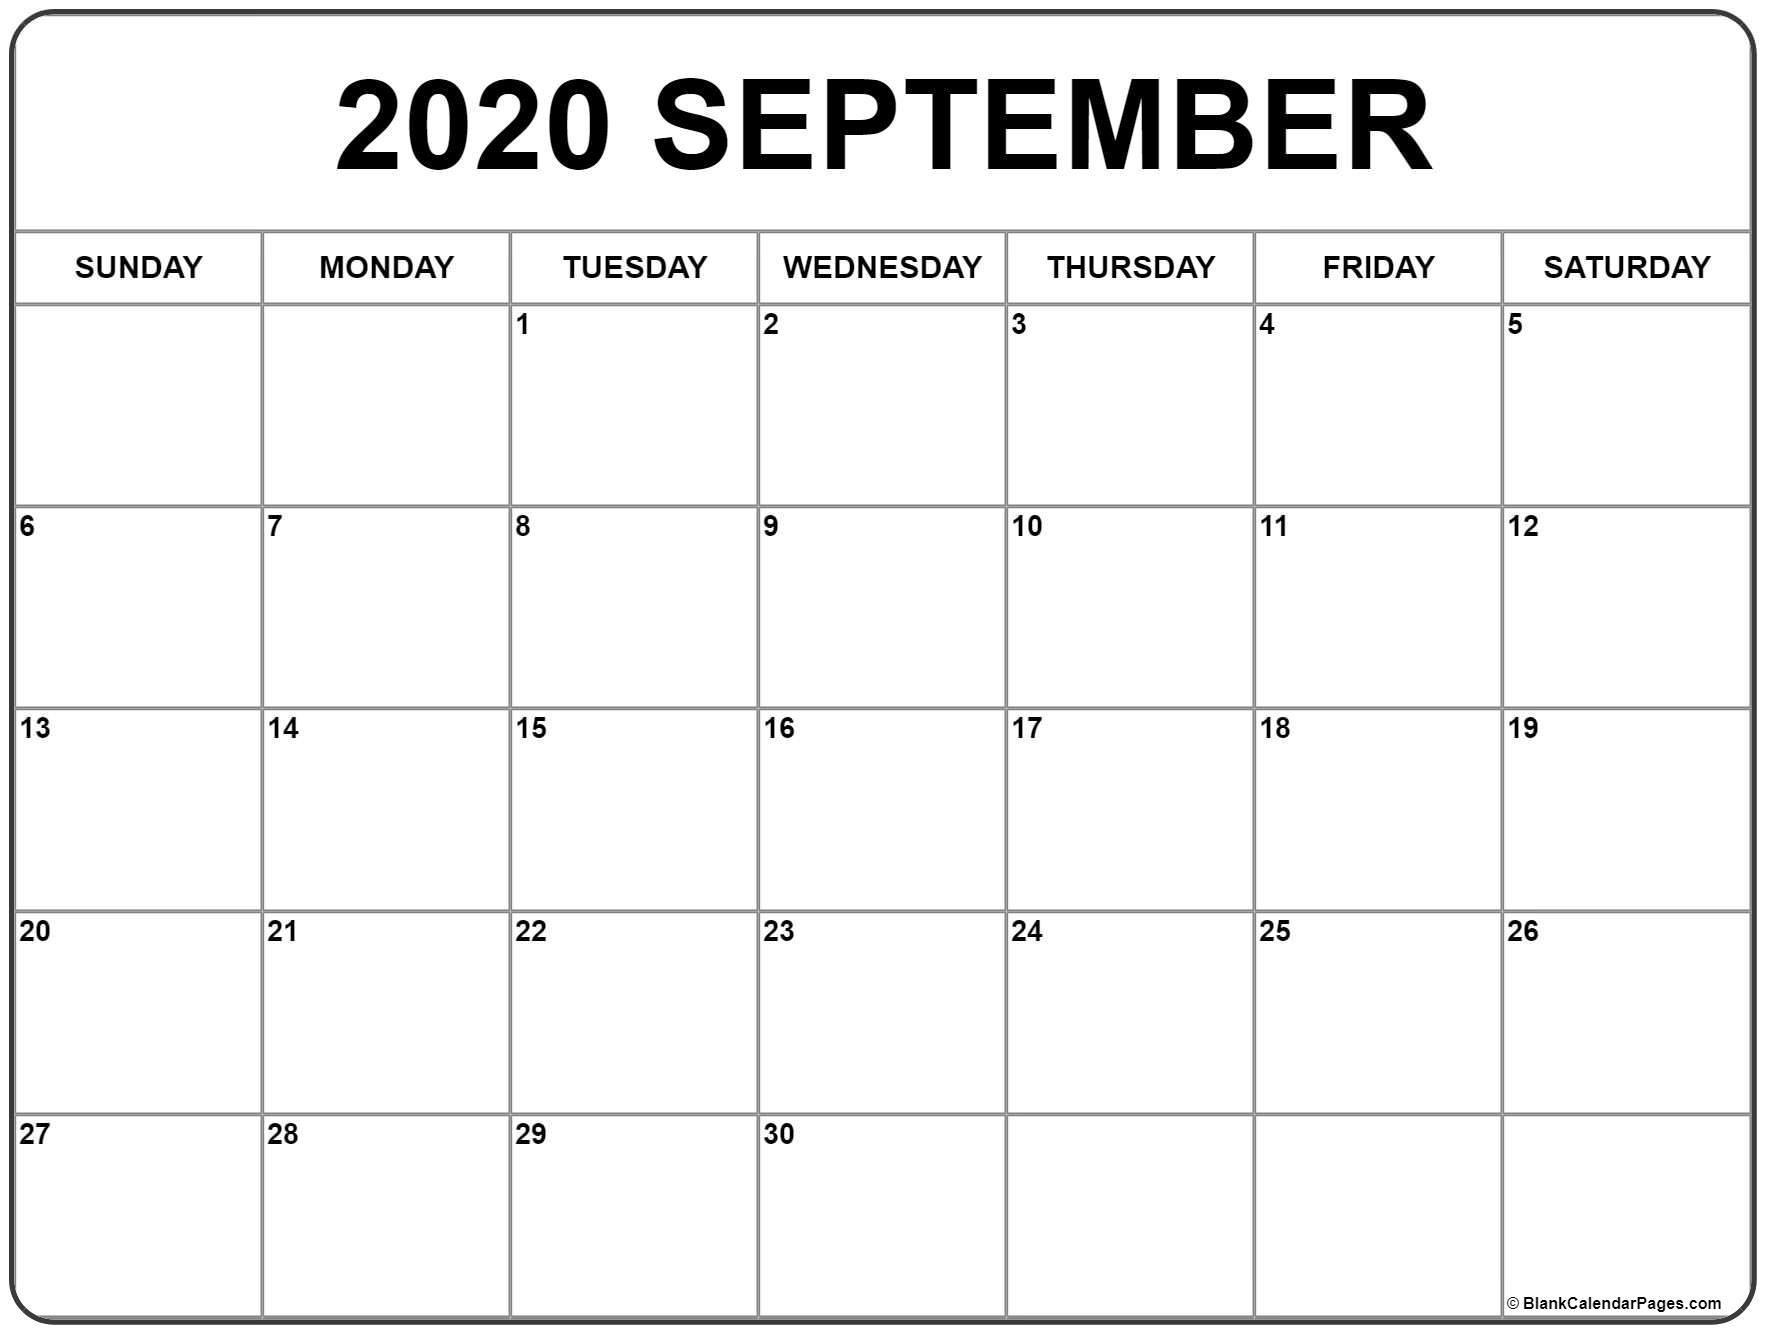 September 2020 Calendar | Free Printable Monthly Calendars  Calandar For August To December 2020